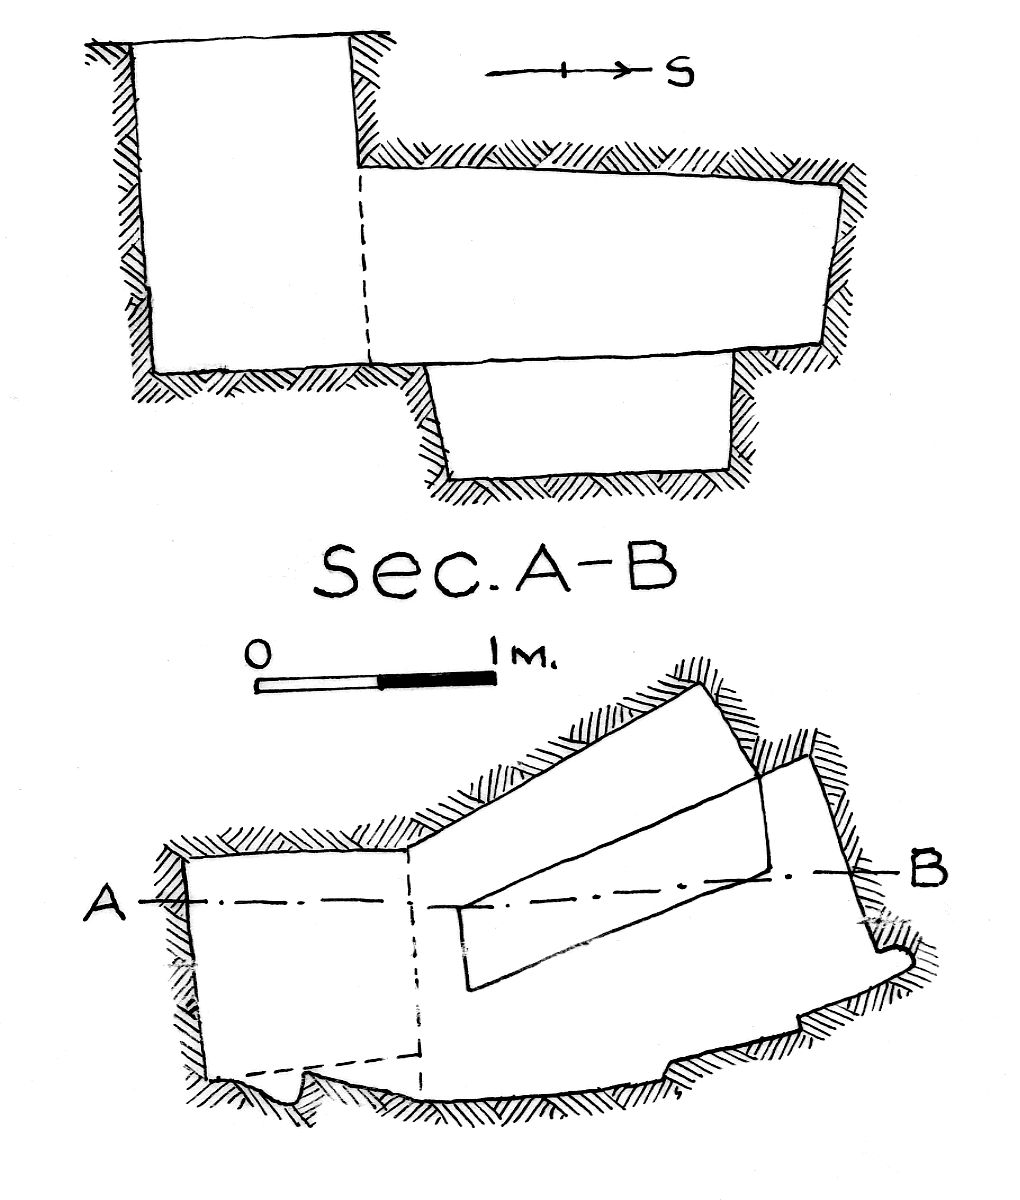 Maps and plans: G 7853, Shaft A